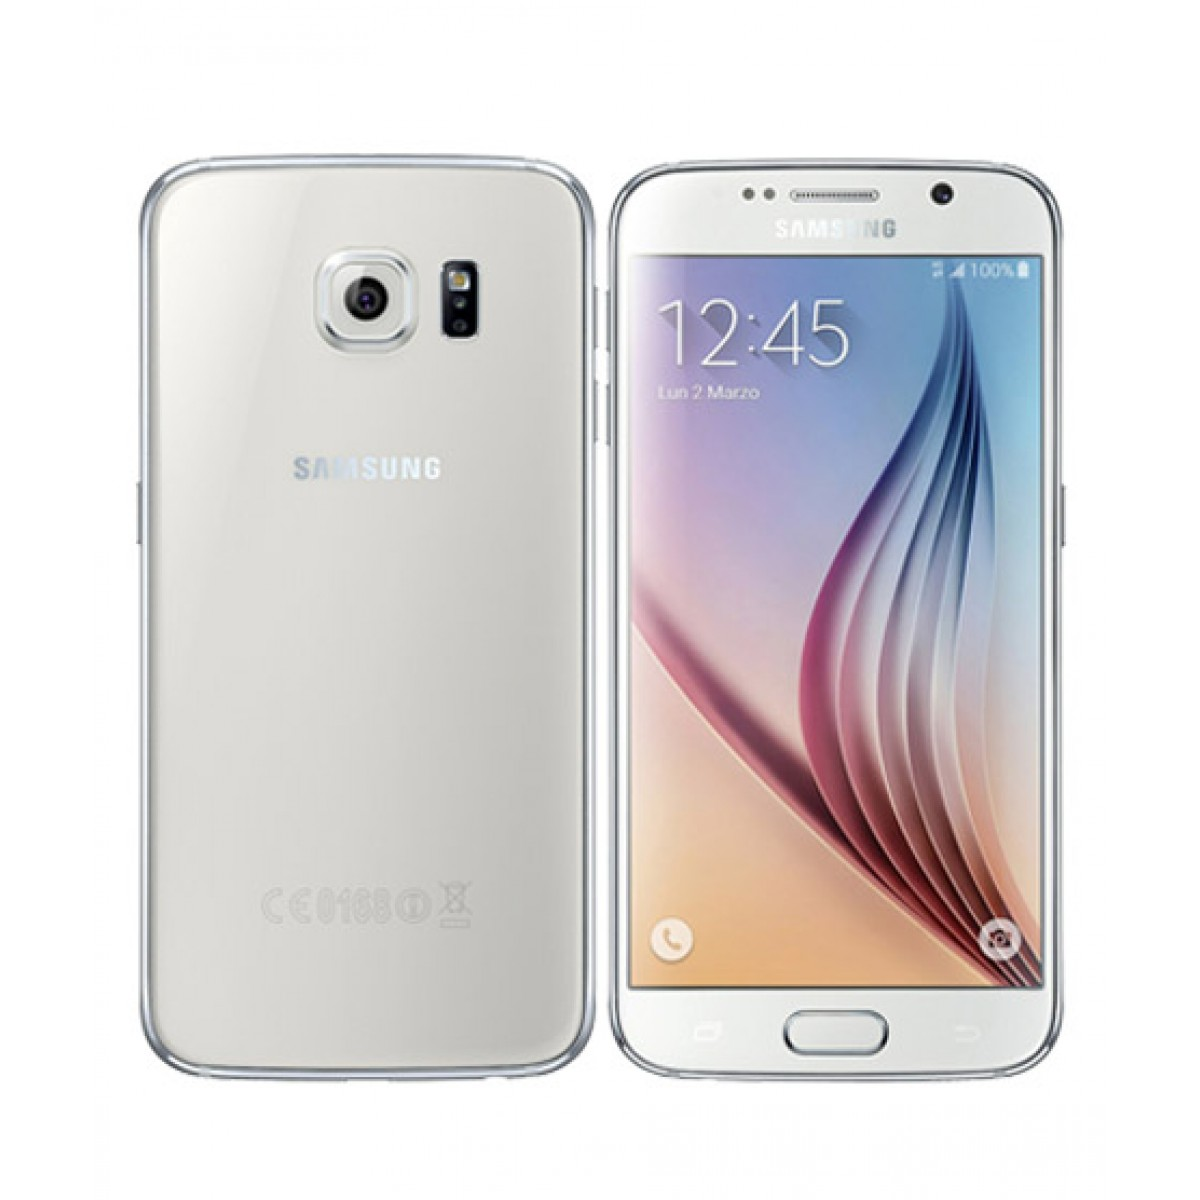 Samsung Galaxy S6 128GB White (G920F)